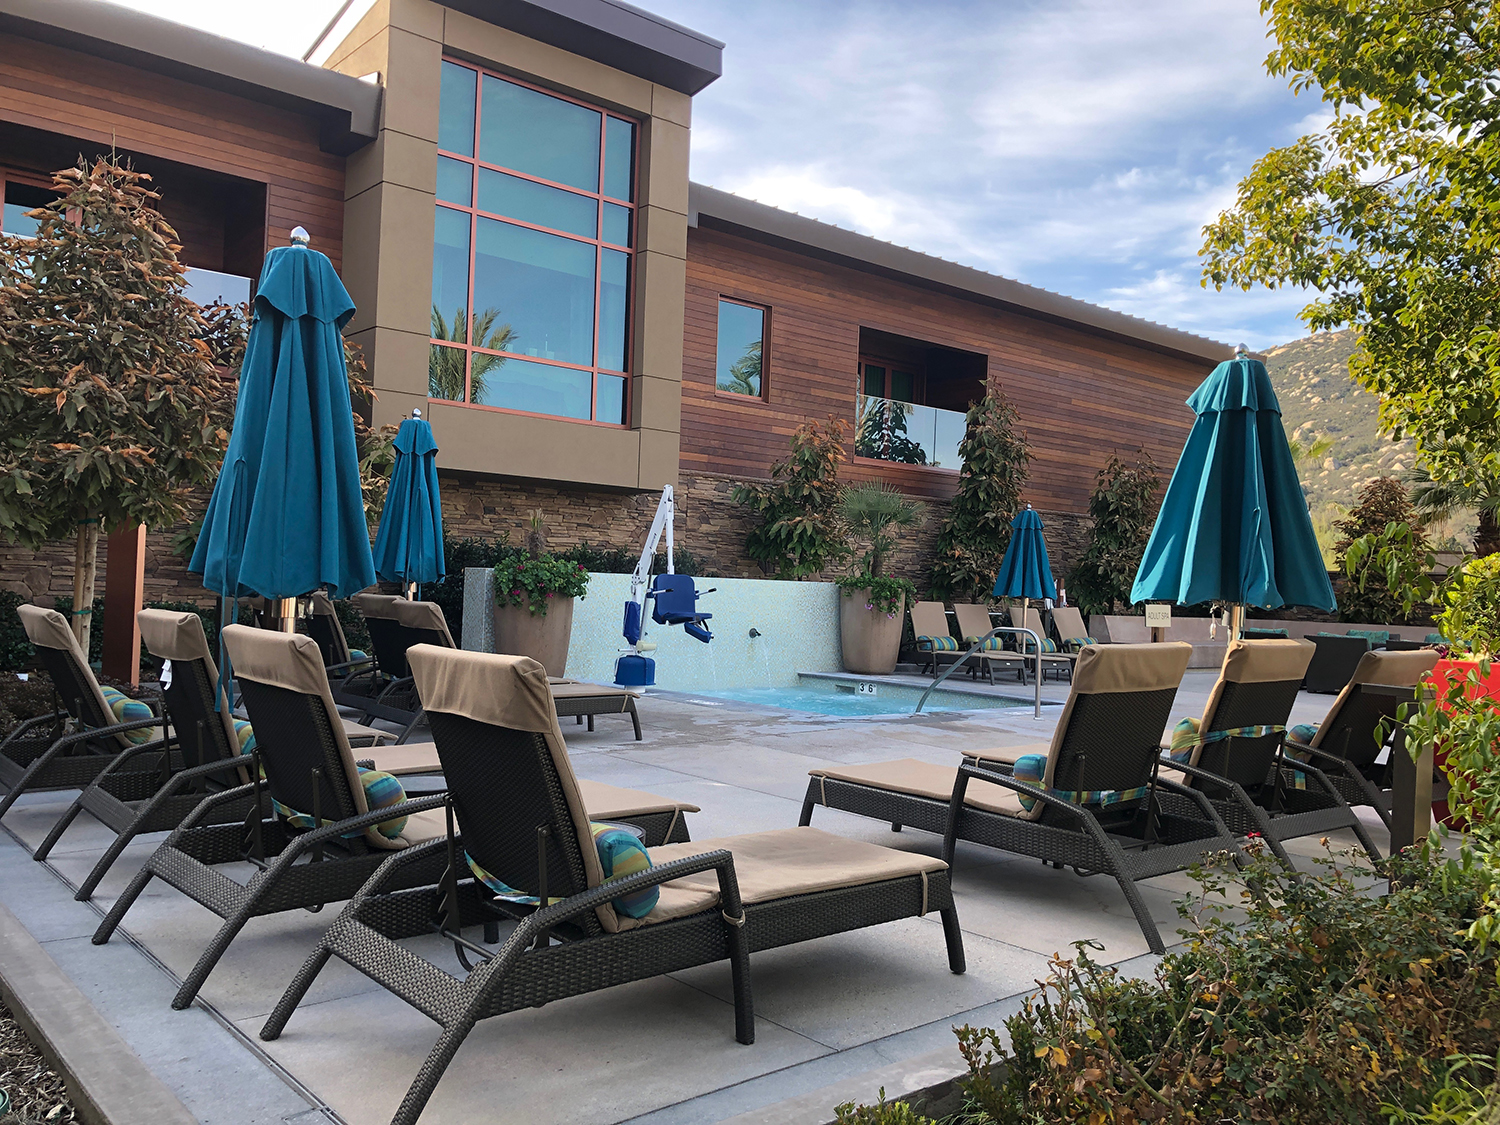 The Cove has three swimming pools, making it the perfect place to relax during a hot day.